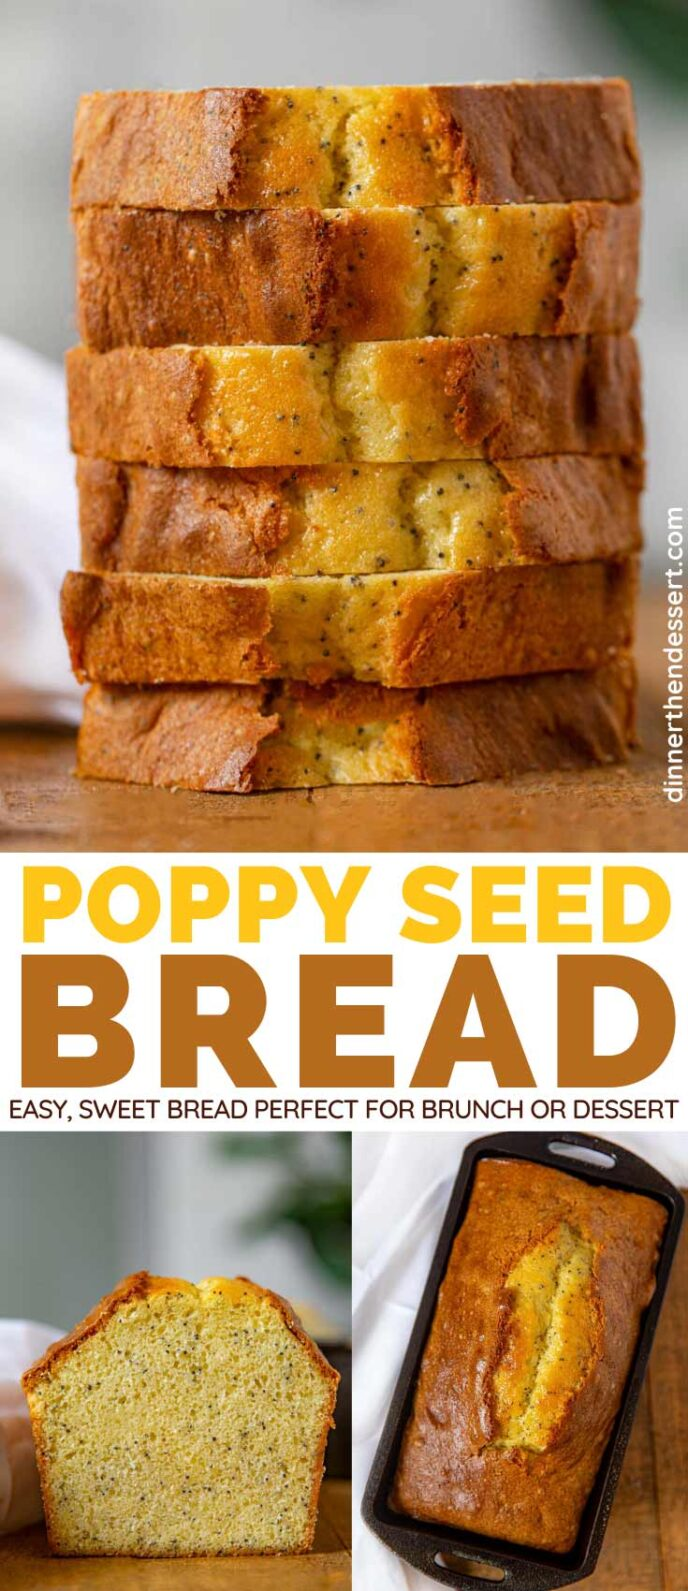 Poppy Seed Bread collage